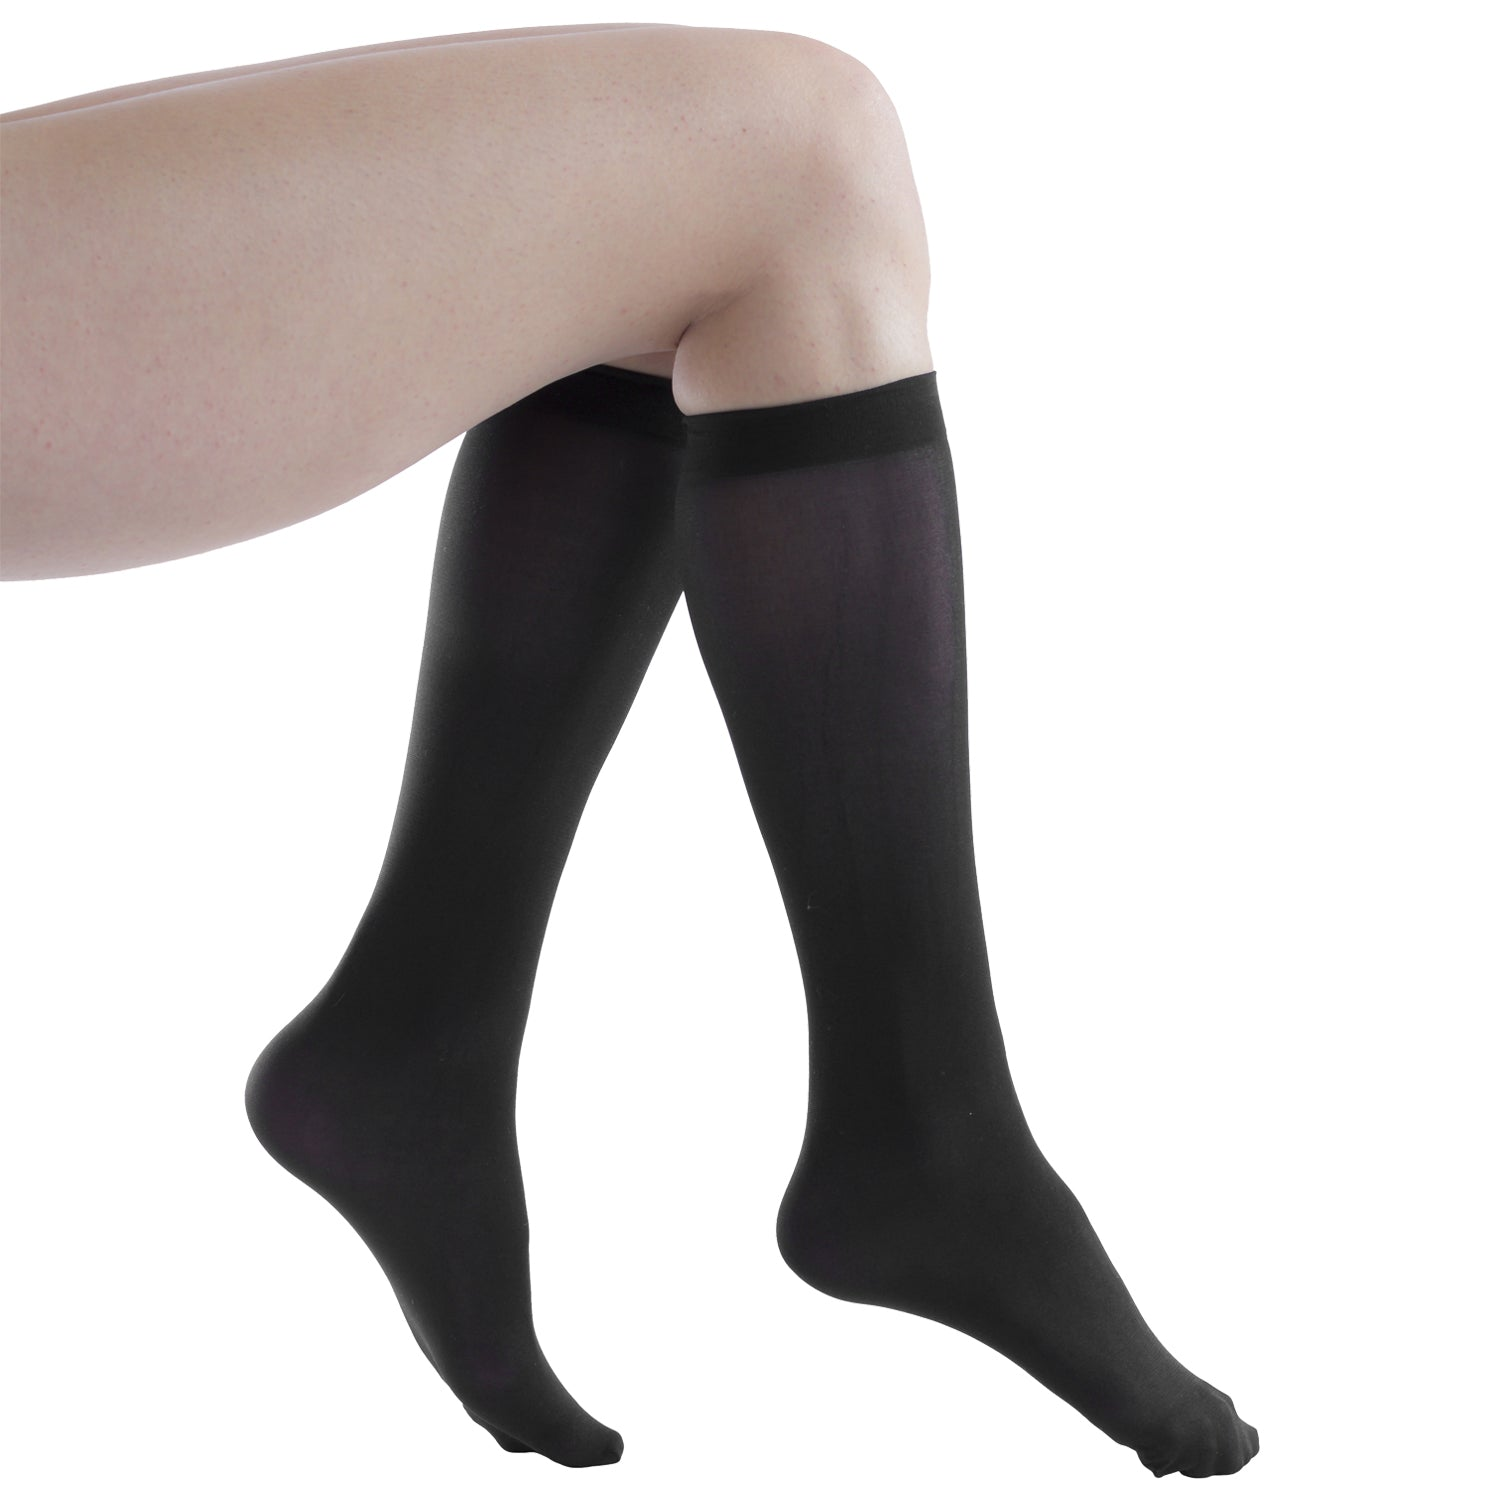 Women's Opaque Stretchy Spandex Knee High Trouser Socks, Size 9-11